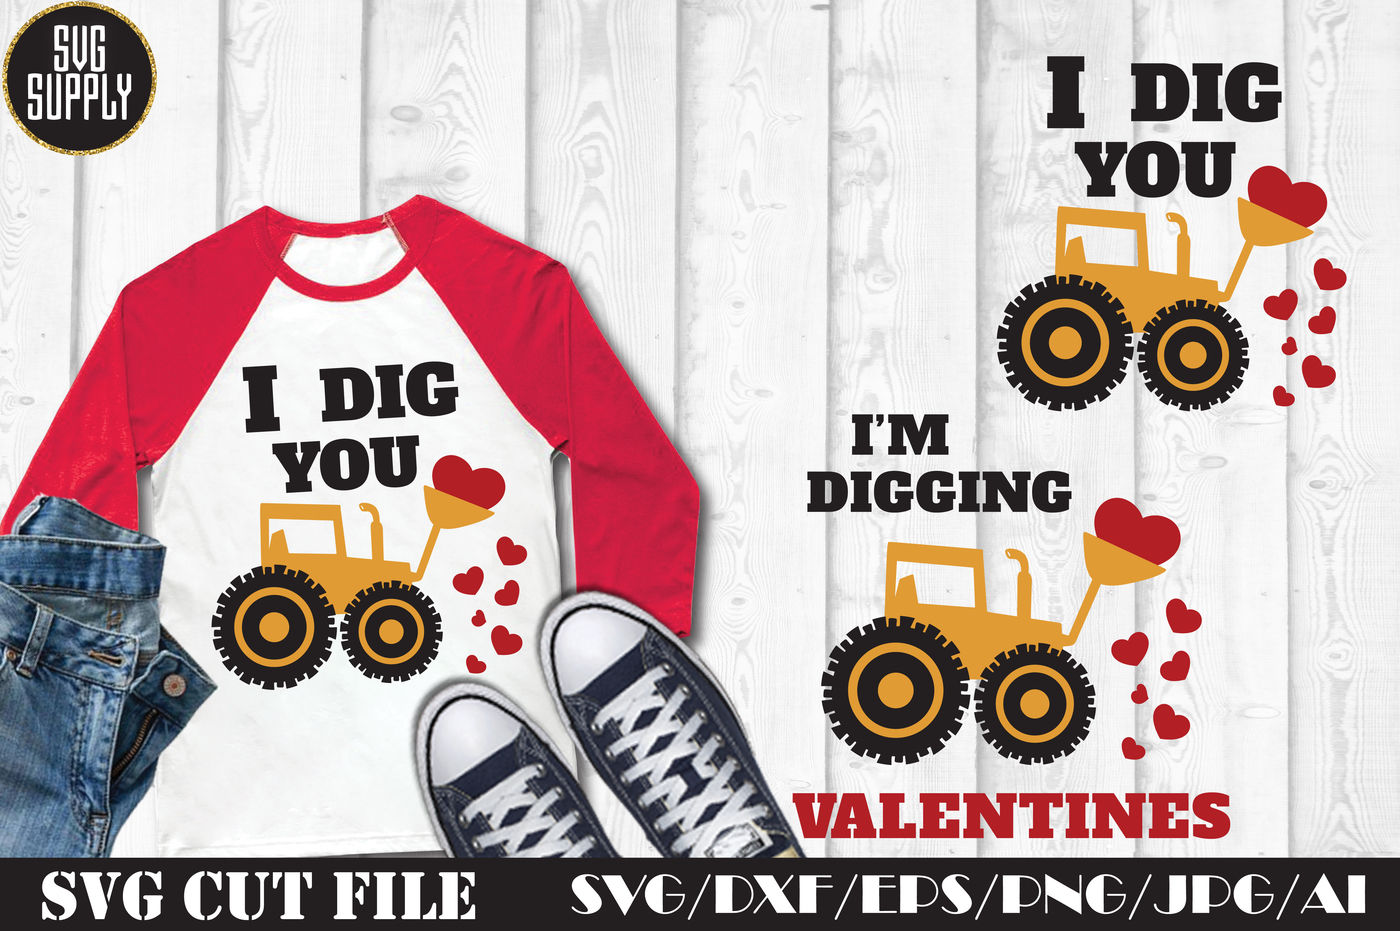 Valentines Day Tractor Truck Svg Cut File By Svgsupply Thehungryjpeg Com